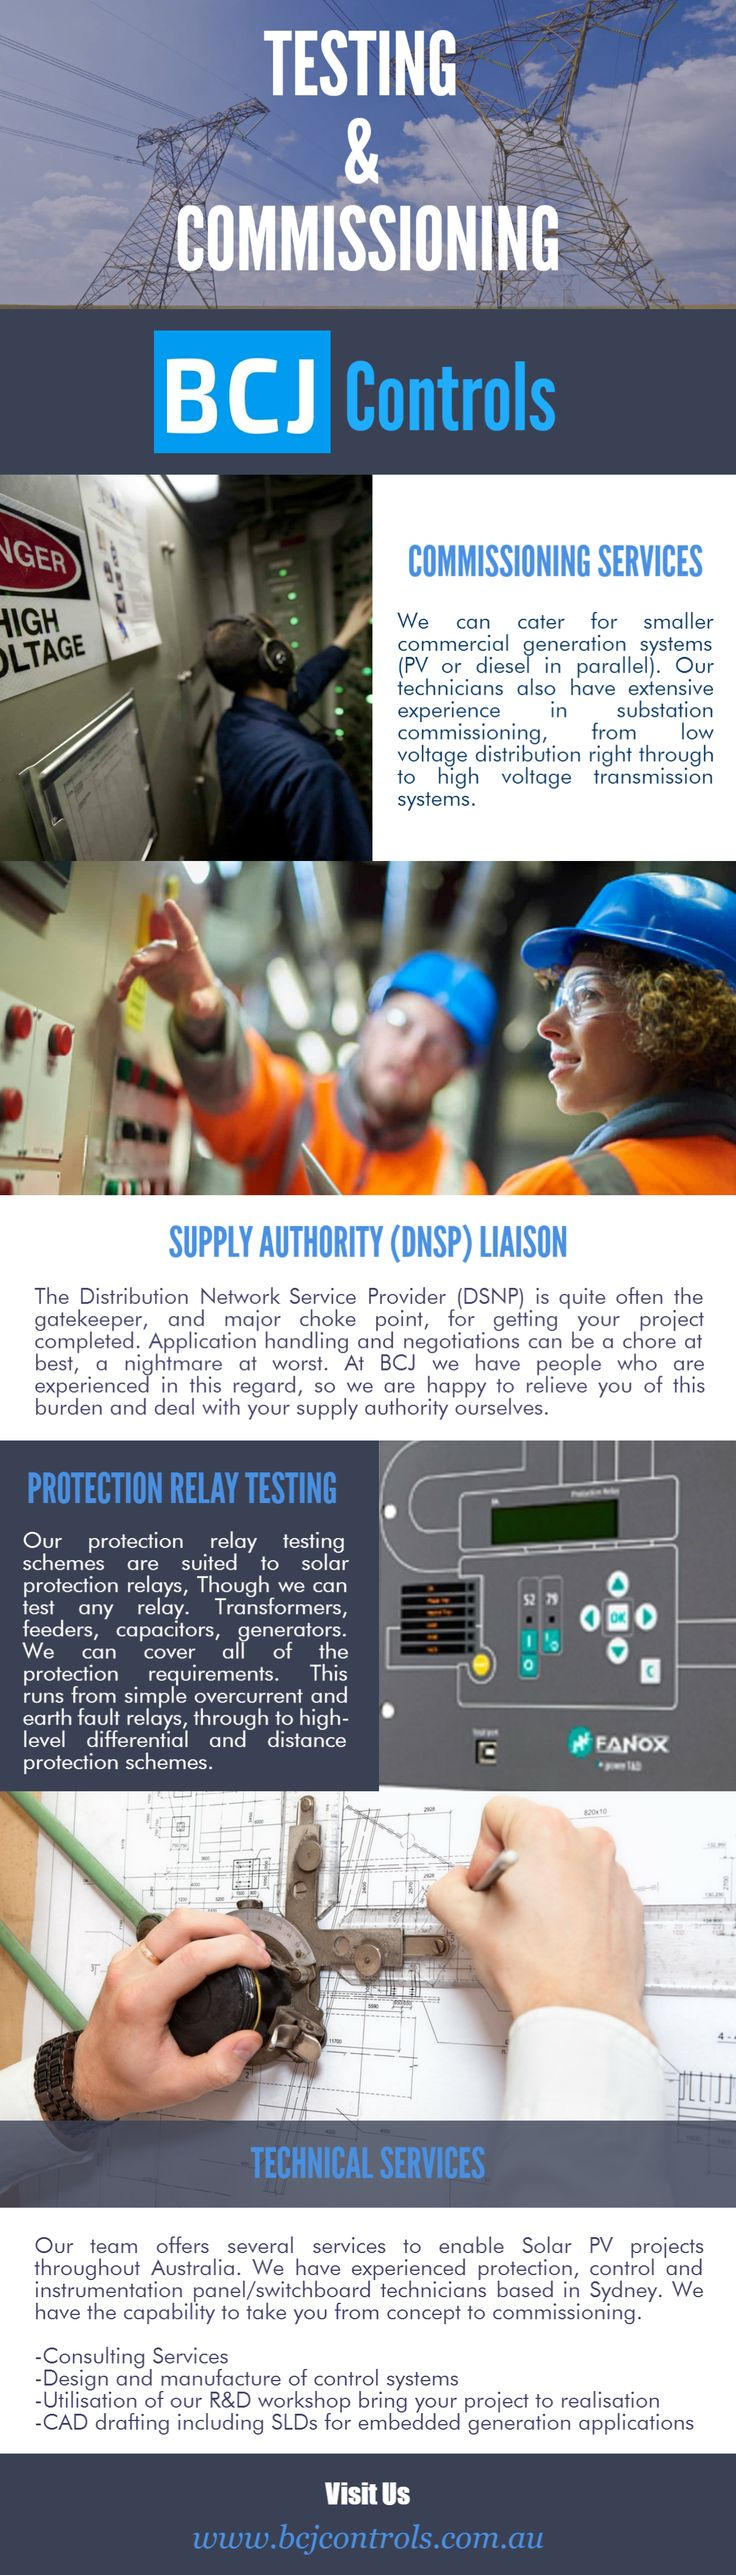 We are experts in testing and commissioning plant including protection testing for HV. We assure to serve you a quality works and products. Our personnel are well-trained doing electrical jobs. Get in touch with us. Happy to serve you.  #ZeroExport #SolarRelay #SolarProtectionRelay #GridProtection #AntiIslanding #SecondaryProtection